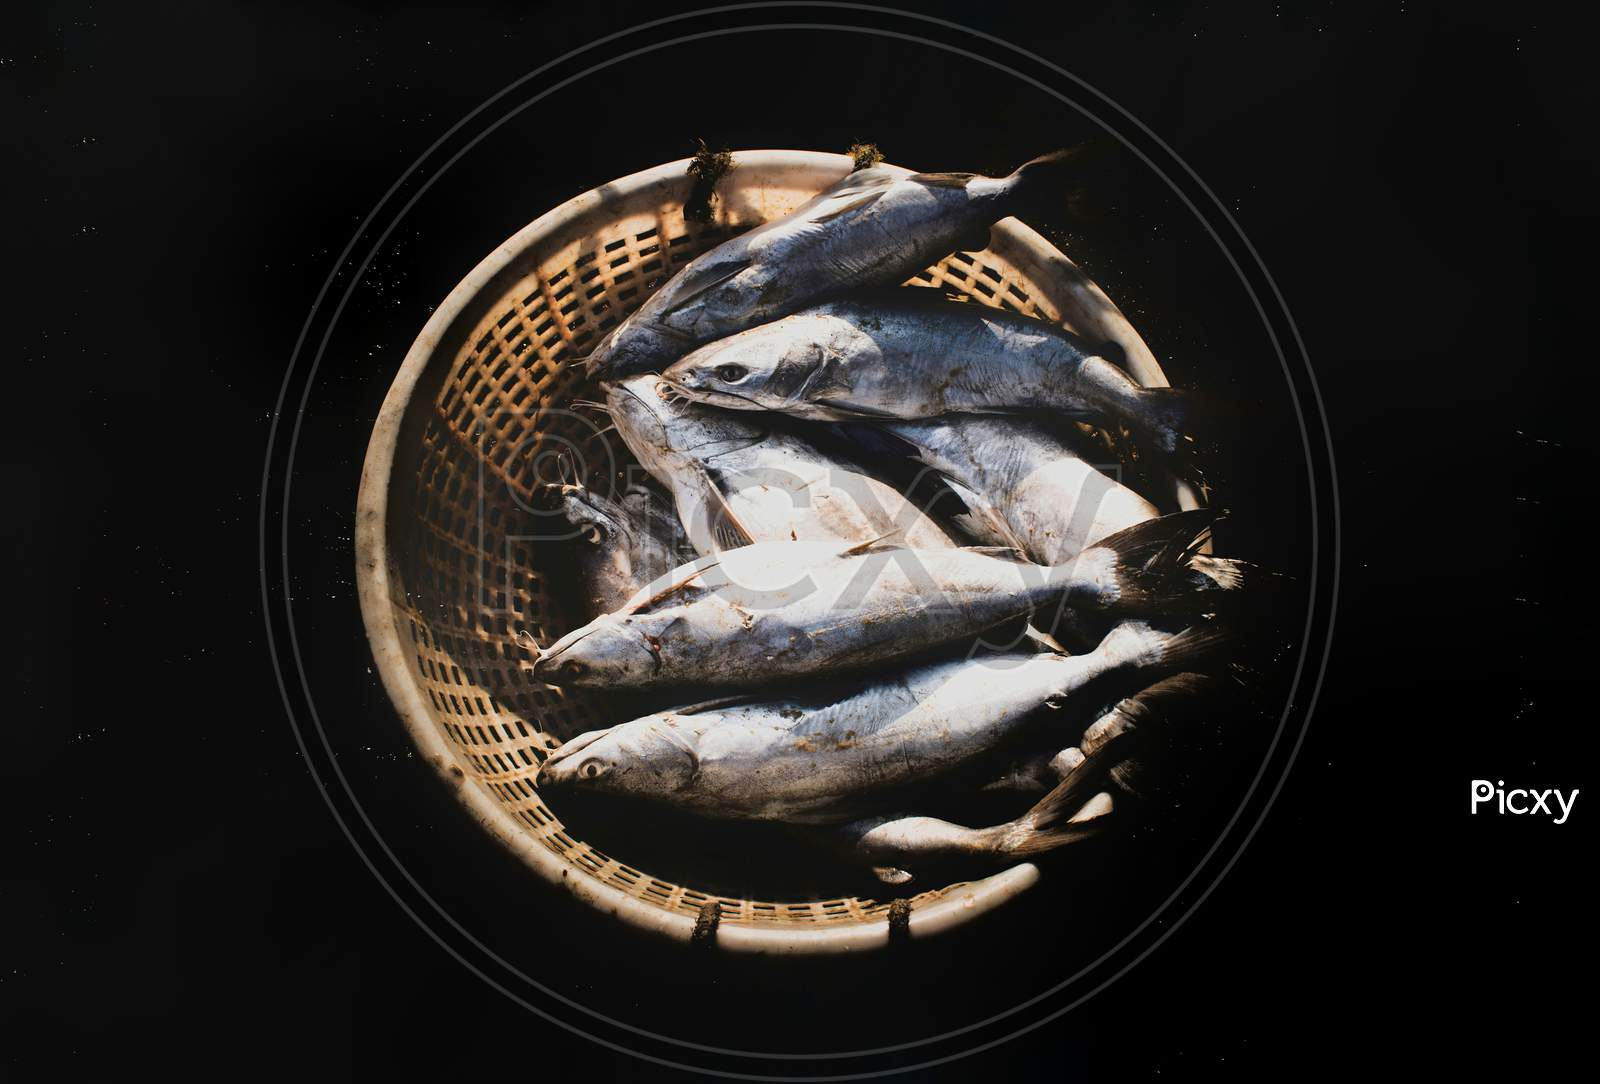 Group Of Silver Catfish In A Fish Container Isolated On Black.